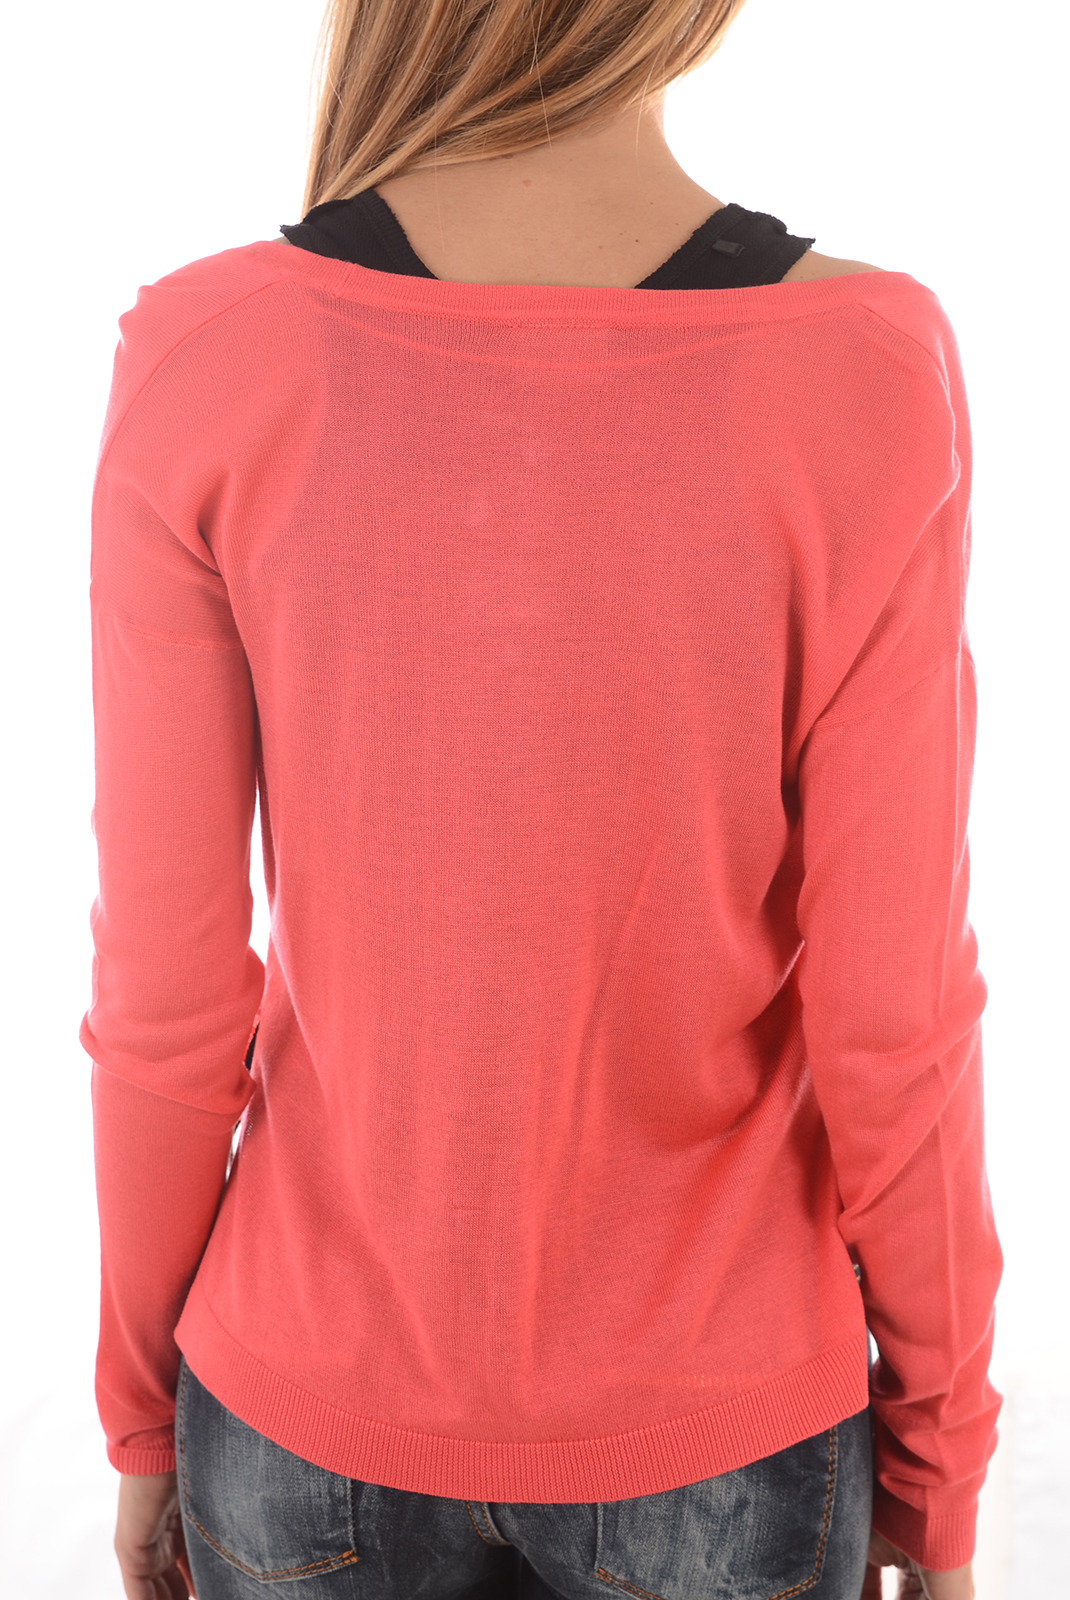 Pulls & gilets  Vero moda SUNSET LS SPLIT ROUGE RED